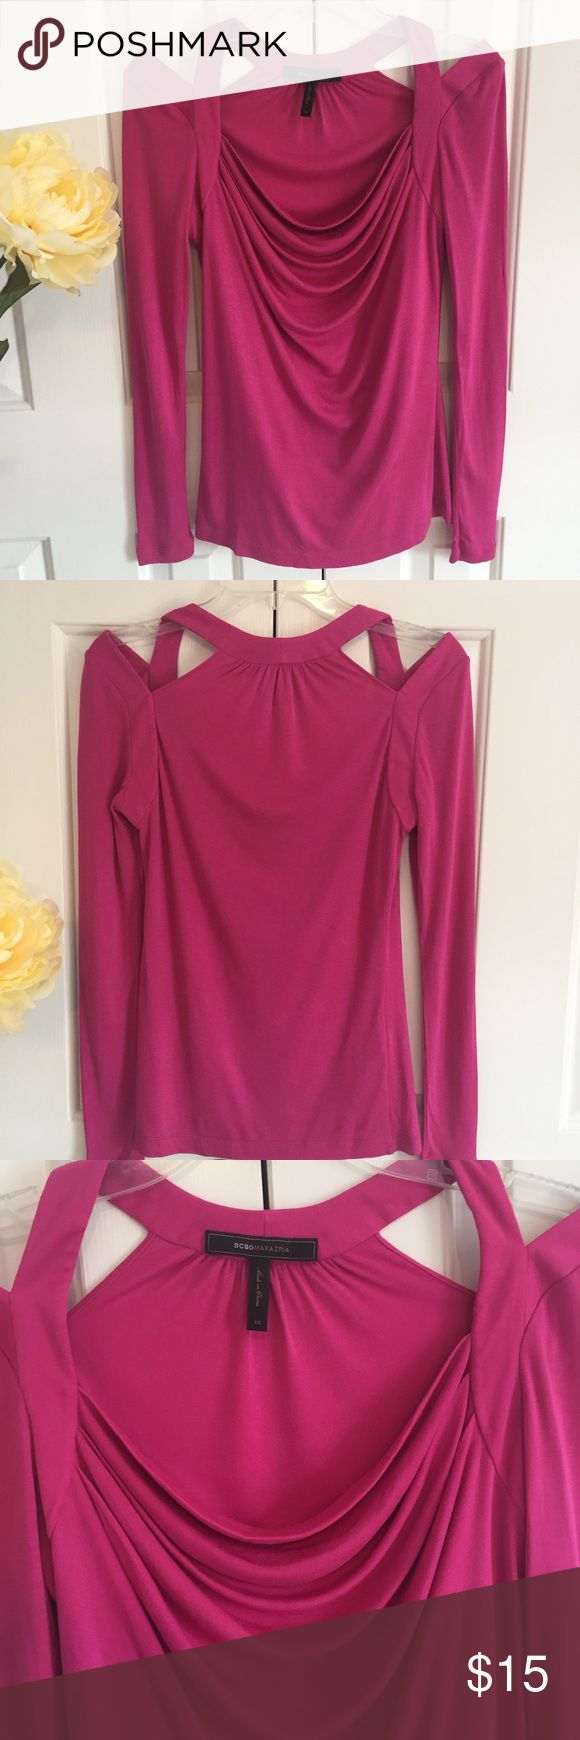 "NWOT! BCBG MaxAzria TOP On trend now: cold shoulder top from BCBG. Cowl neck. Long sleeves. 17"" pit to pit. 25"" shoulder to hem. 25.5"" arm length. 100% Modal. So soft. Magenta. New Without Tags. BCBGMaxAzria Tops"